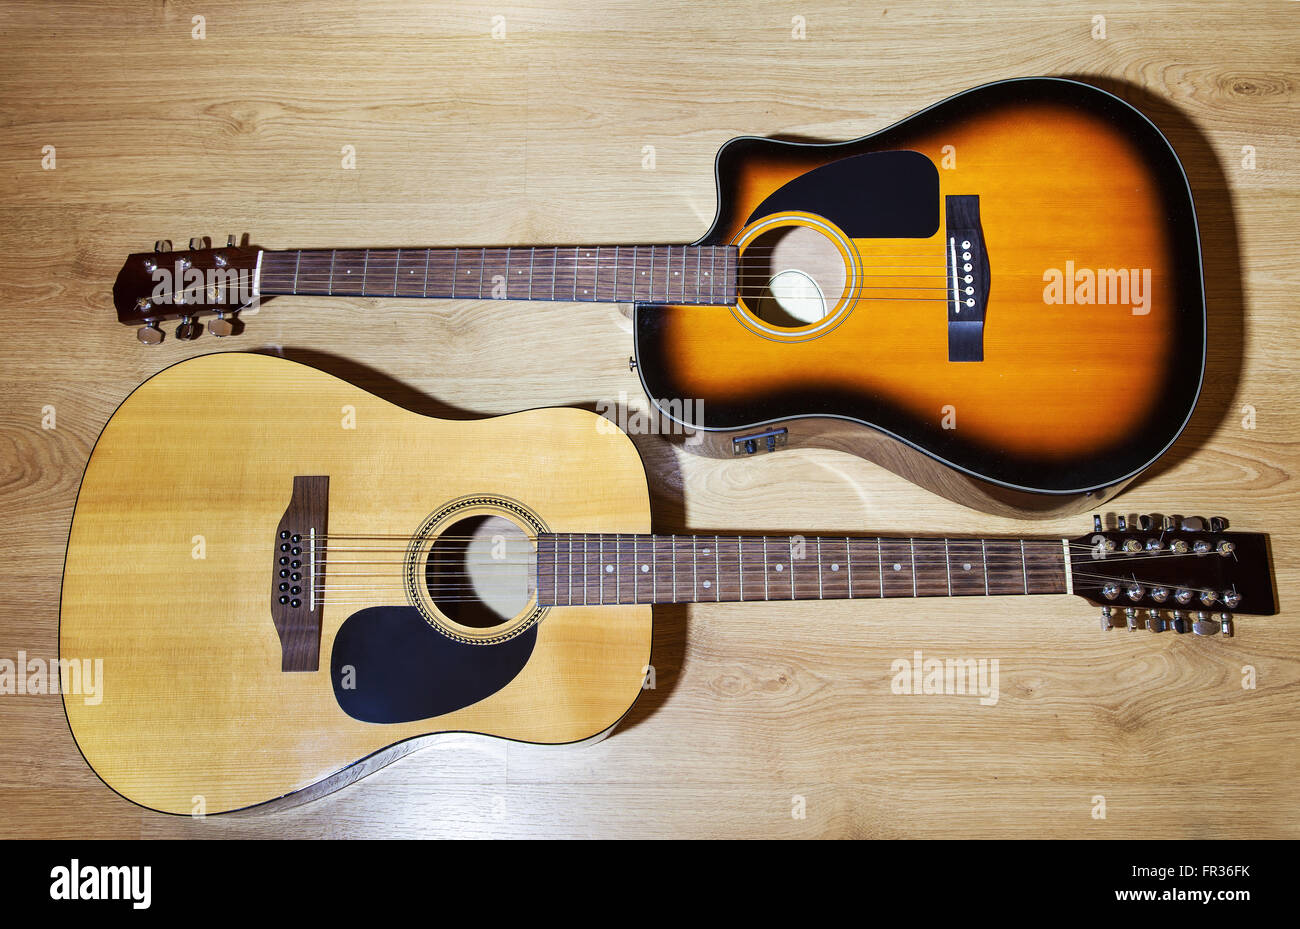 two acoustic guitars lying on wooden floor closeup - Stock Image